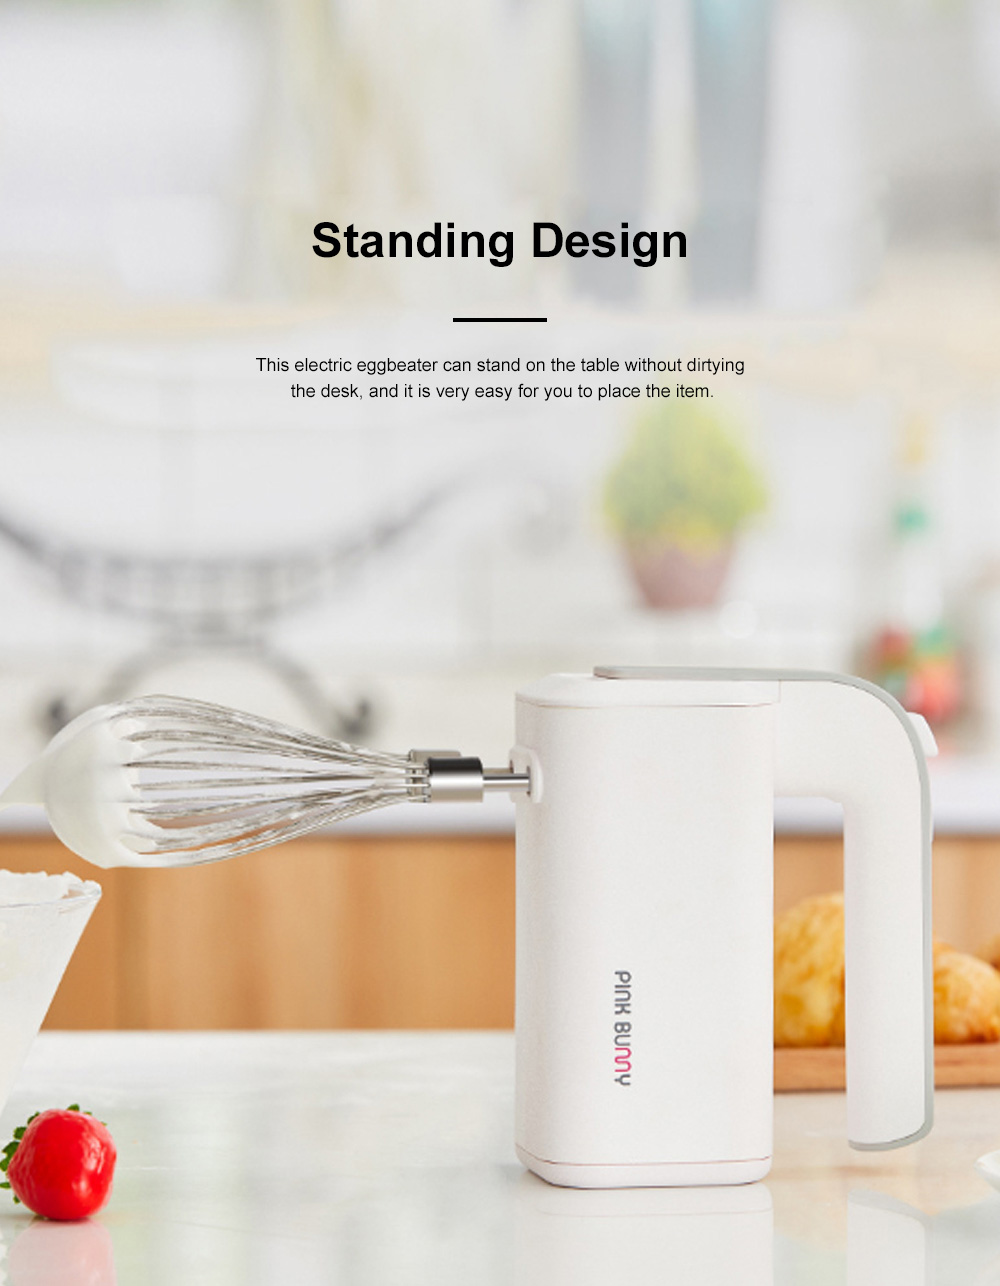 Handy Household Standing Electric Eggbeater Large Capacity Battery Powerful Baking Beater Rechargeable Small Egg Beater Baking Mixer Tool 1